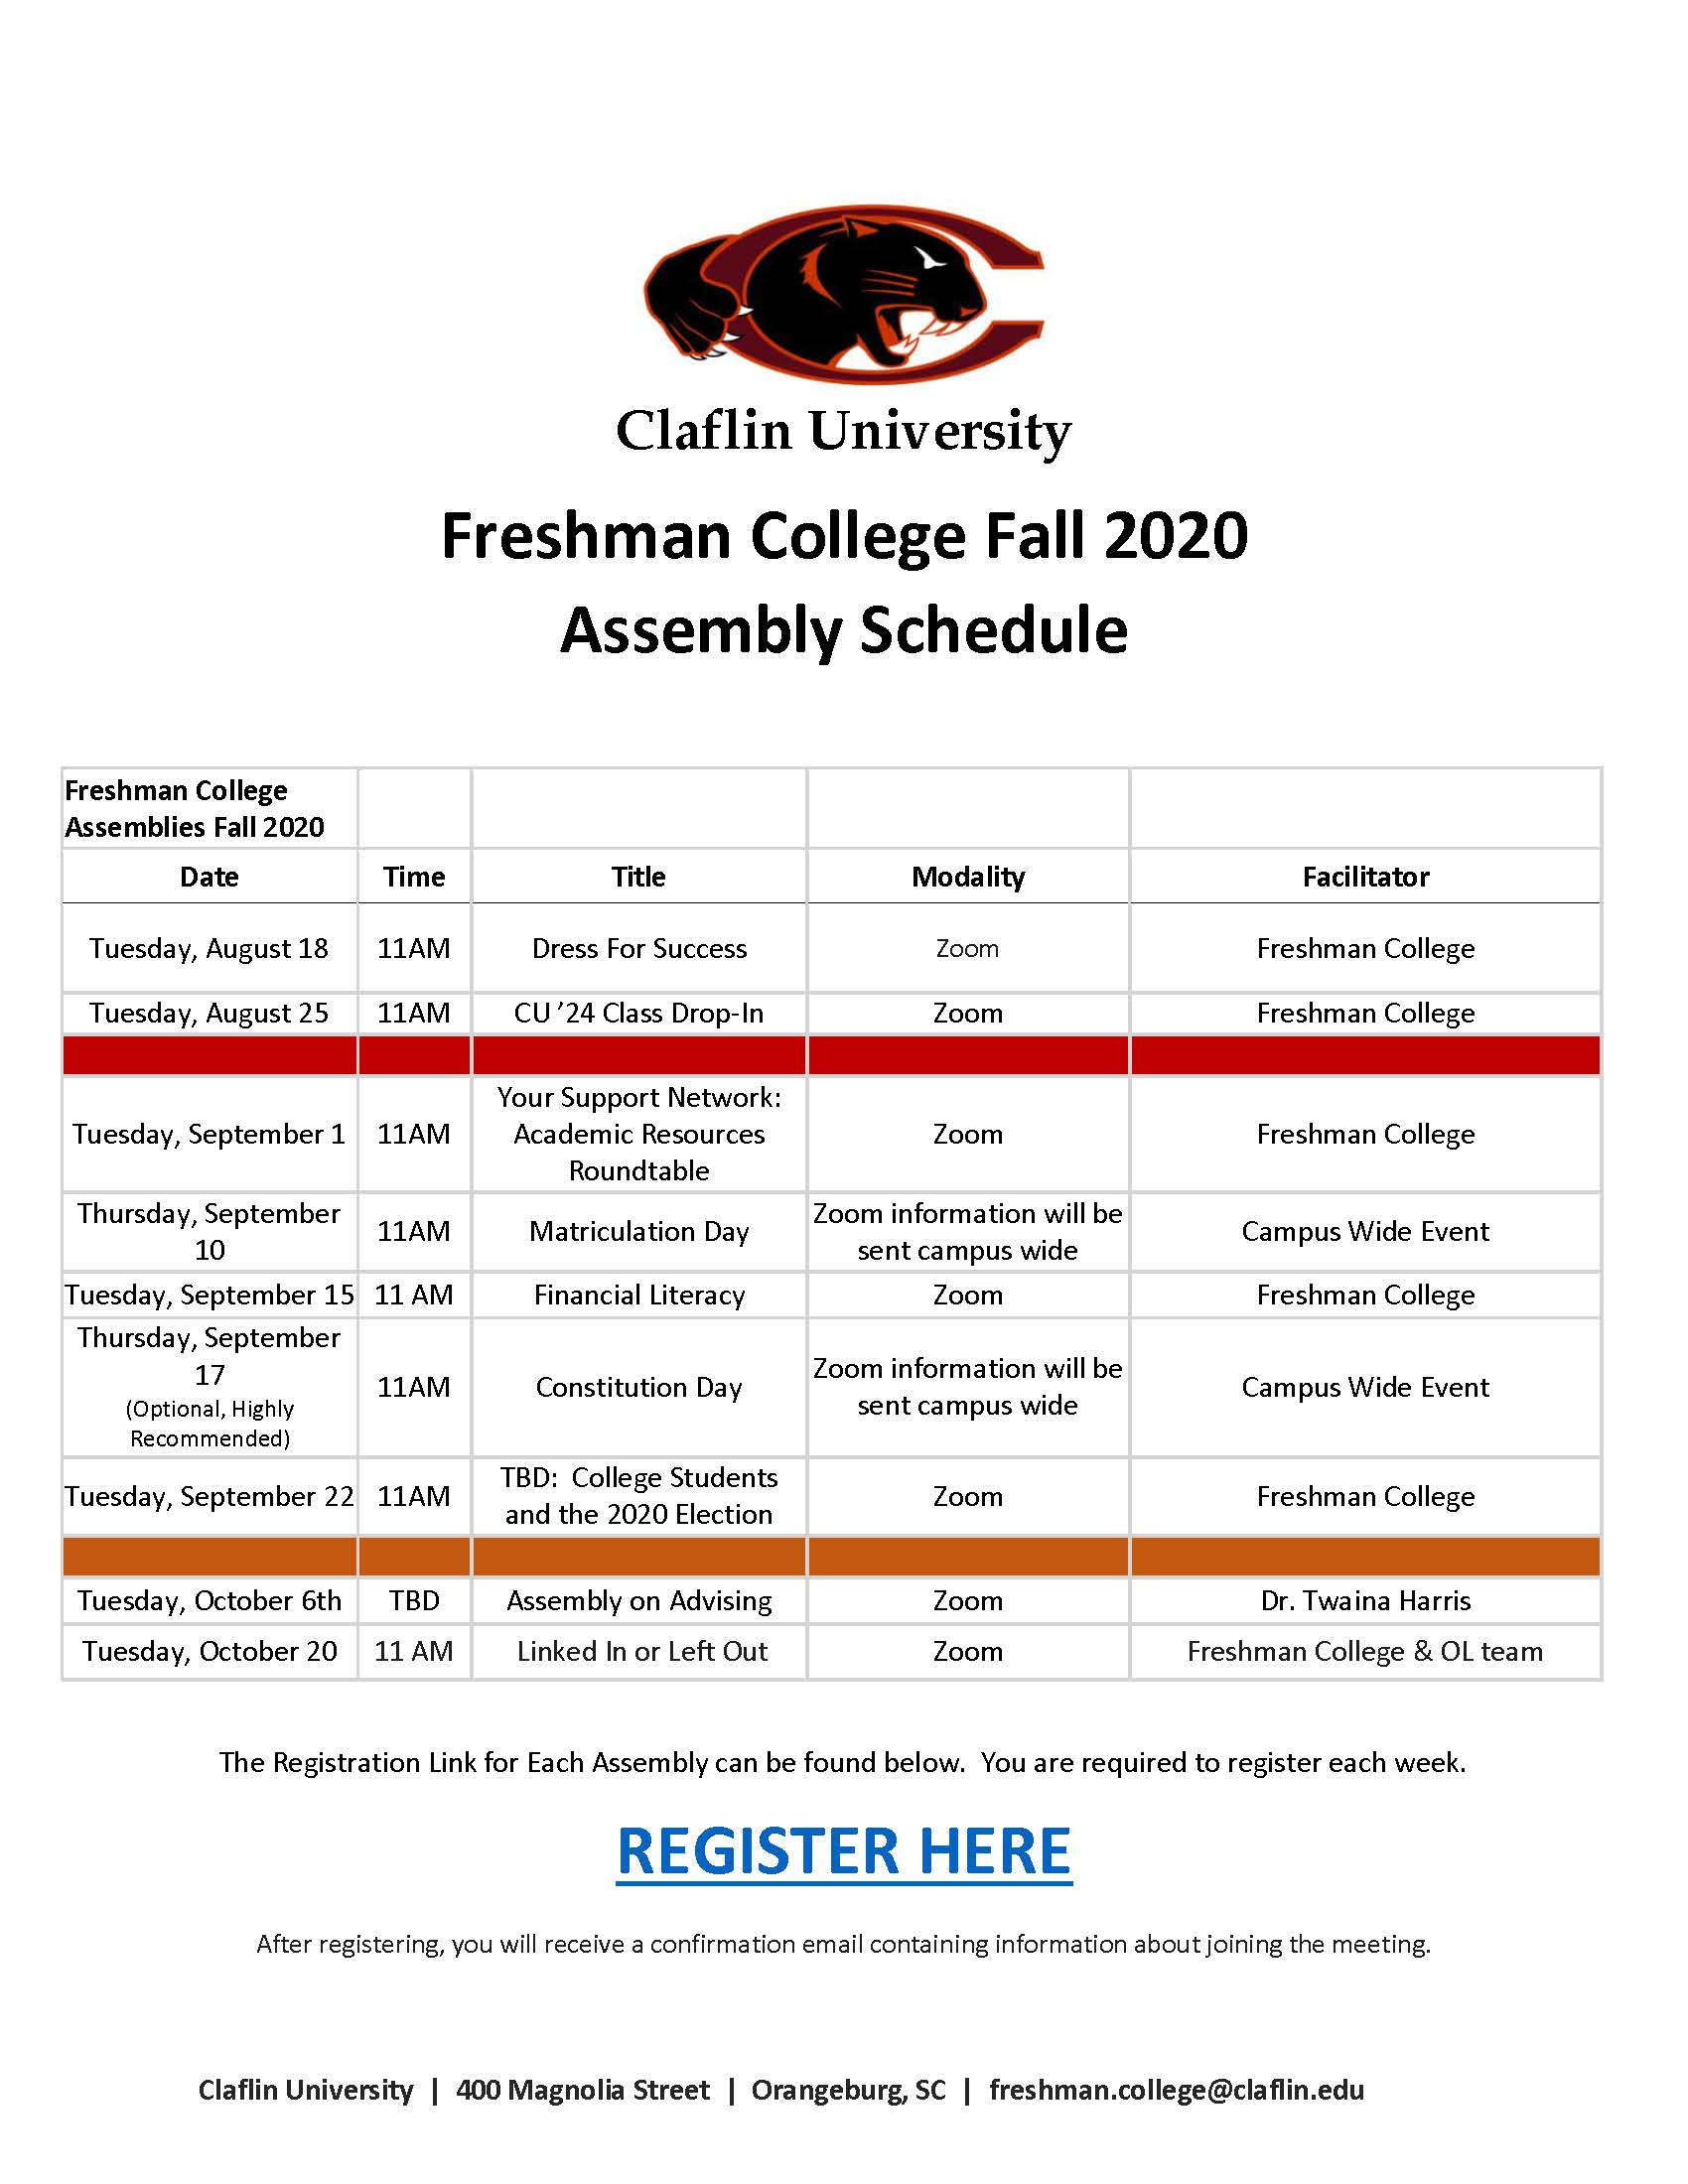 Claflin University fall 2020 assembly schedule